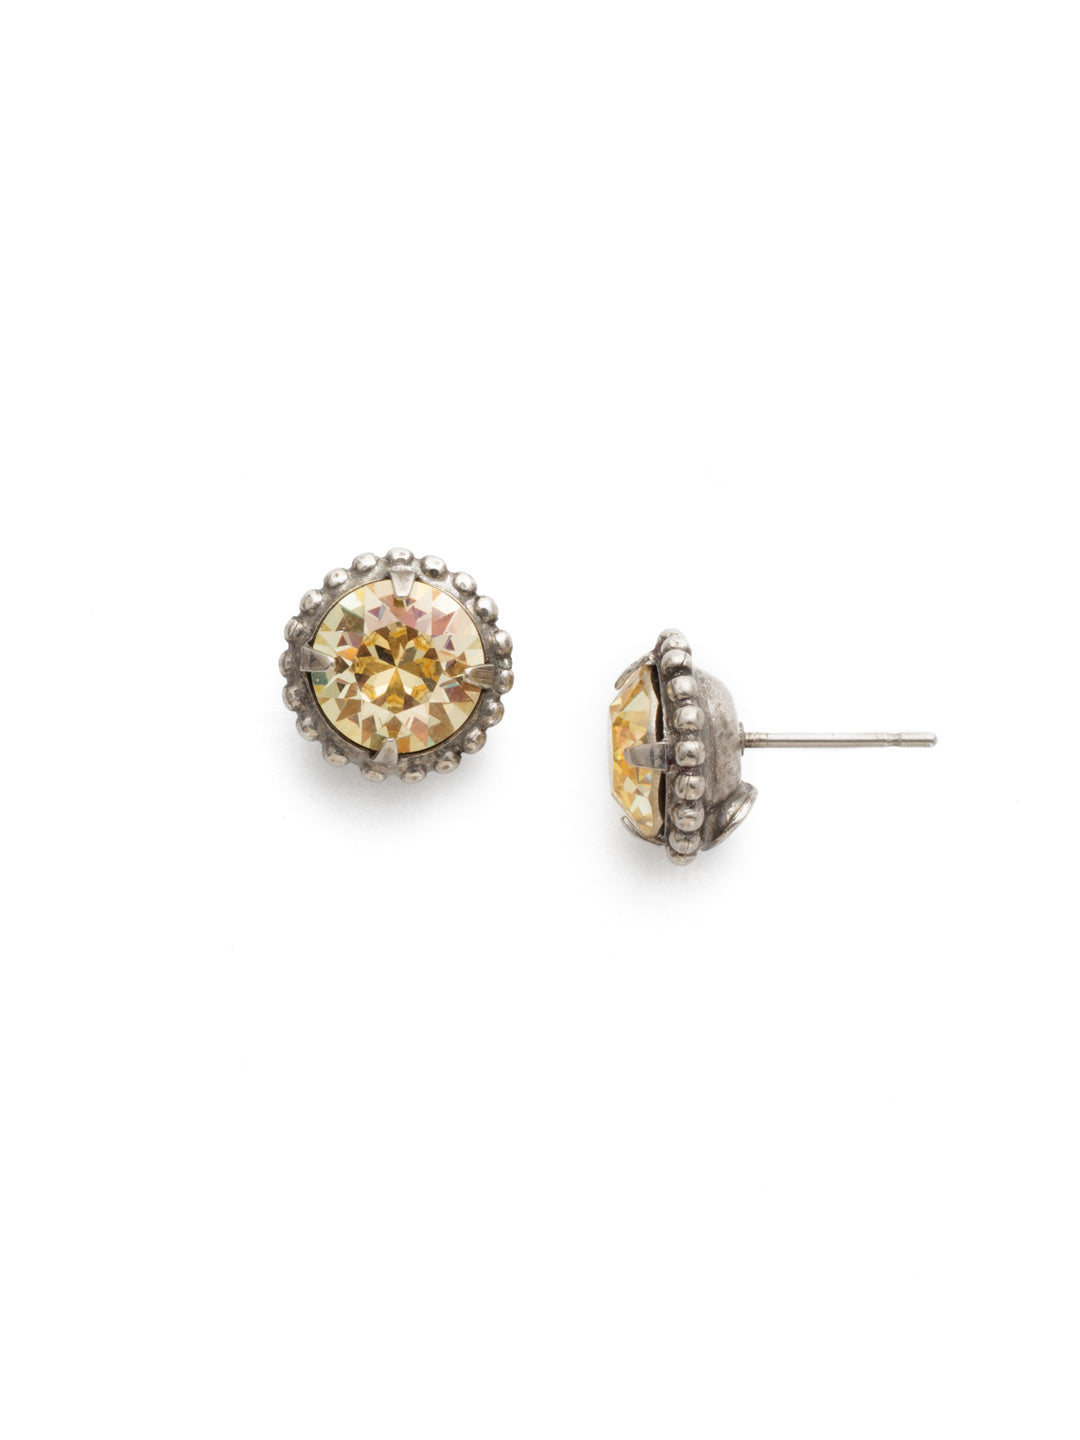 Simplicity Stud Earrings - EBY38ASCCH